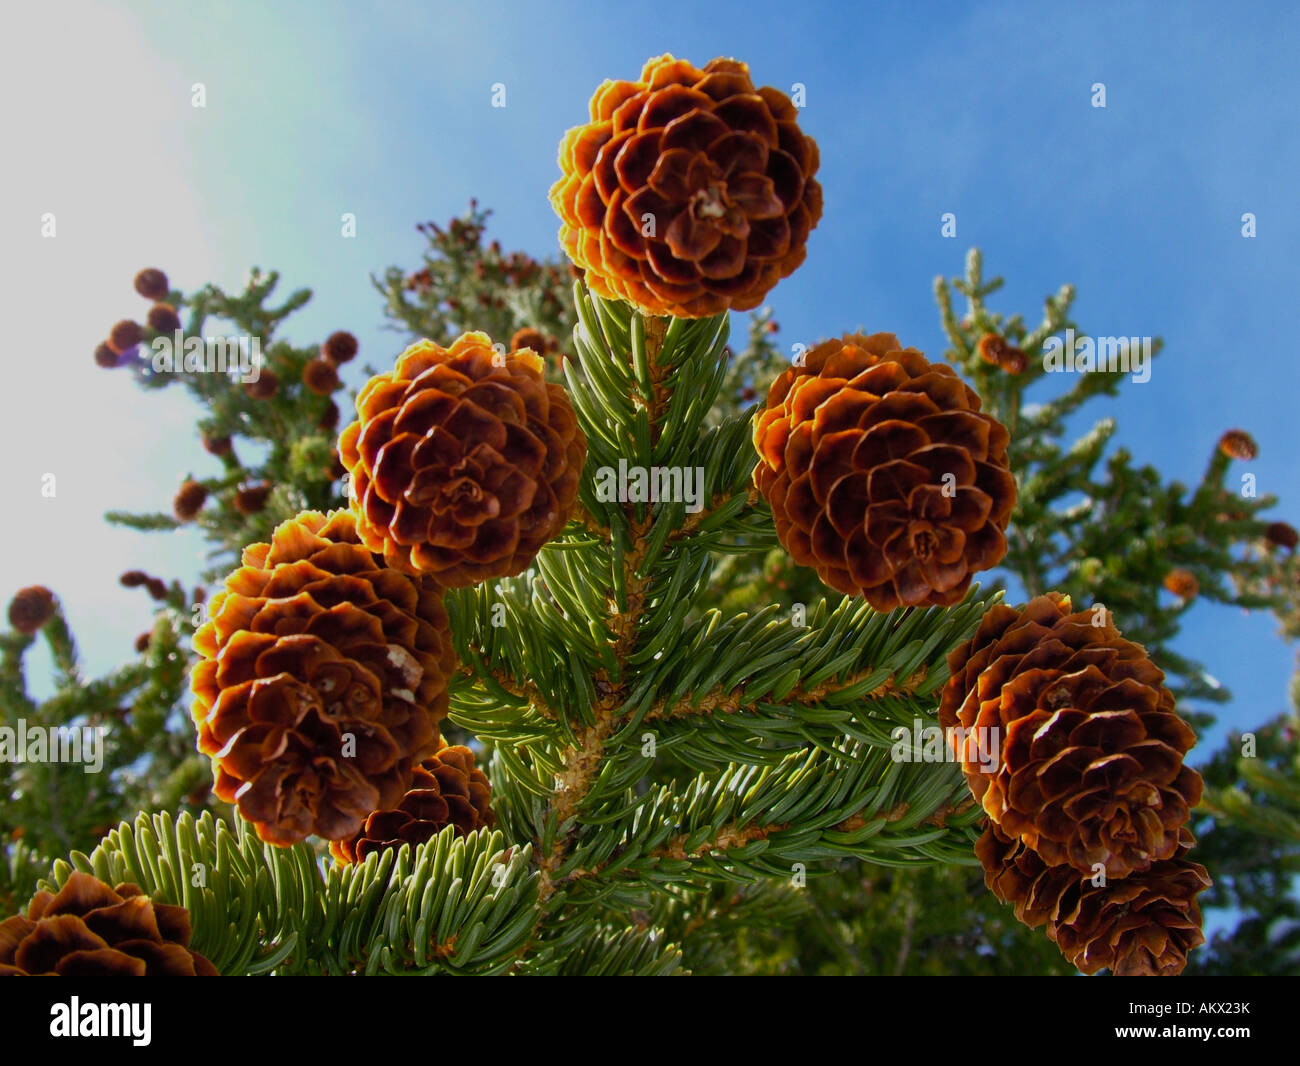 Pine cone on a conifer tree in Rocky Mountain National Park, Colorado, United States, North America - Stock Image